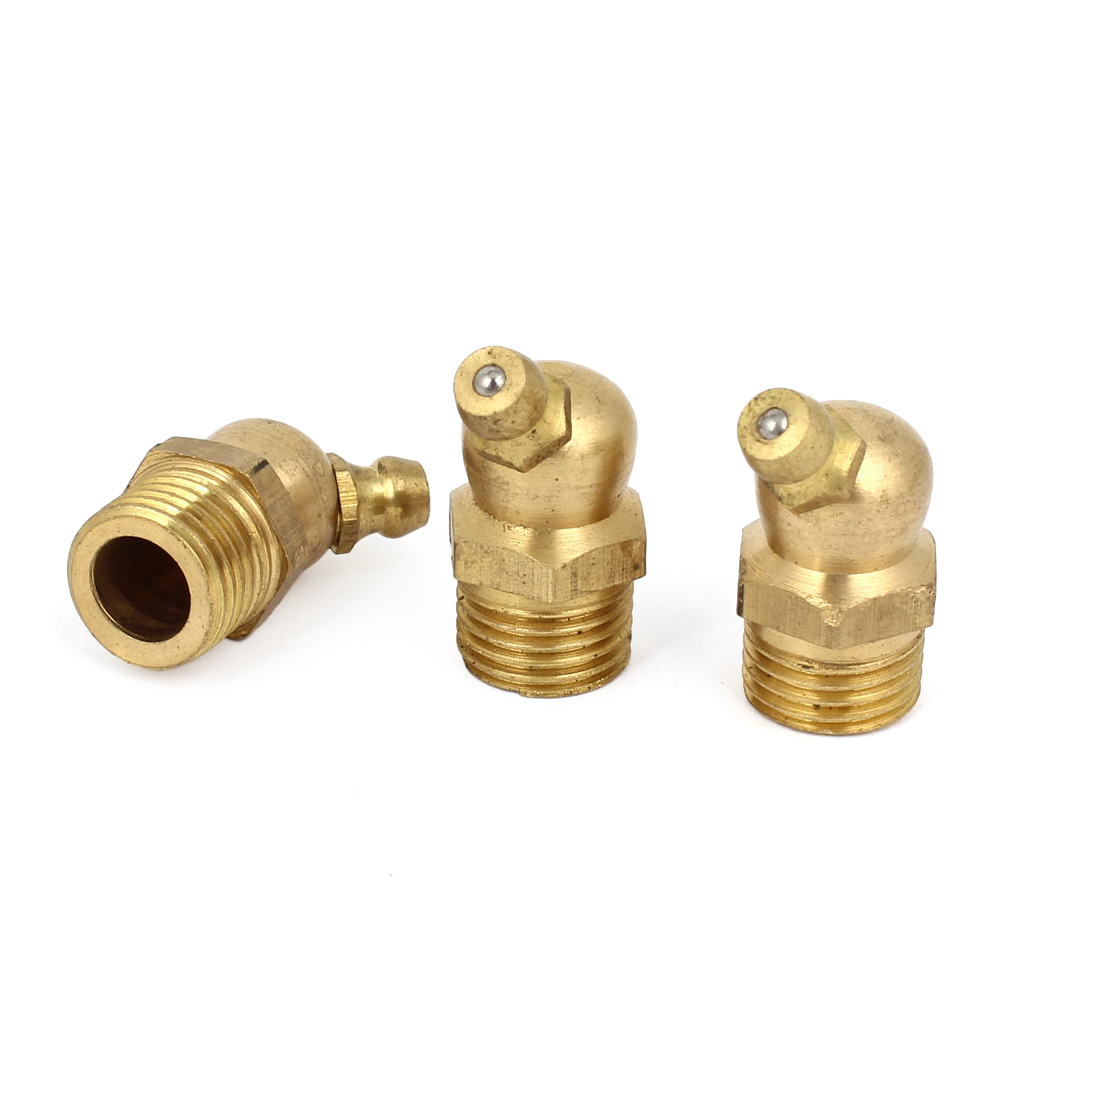 13mm Male Threaded 45 Degree Hydraulic Grease Nipple Fitting Brass Tone 3 Pcs